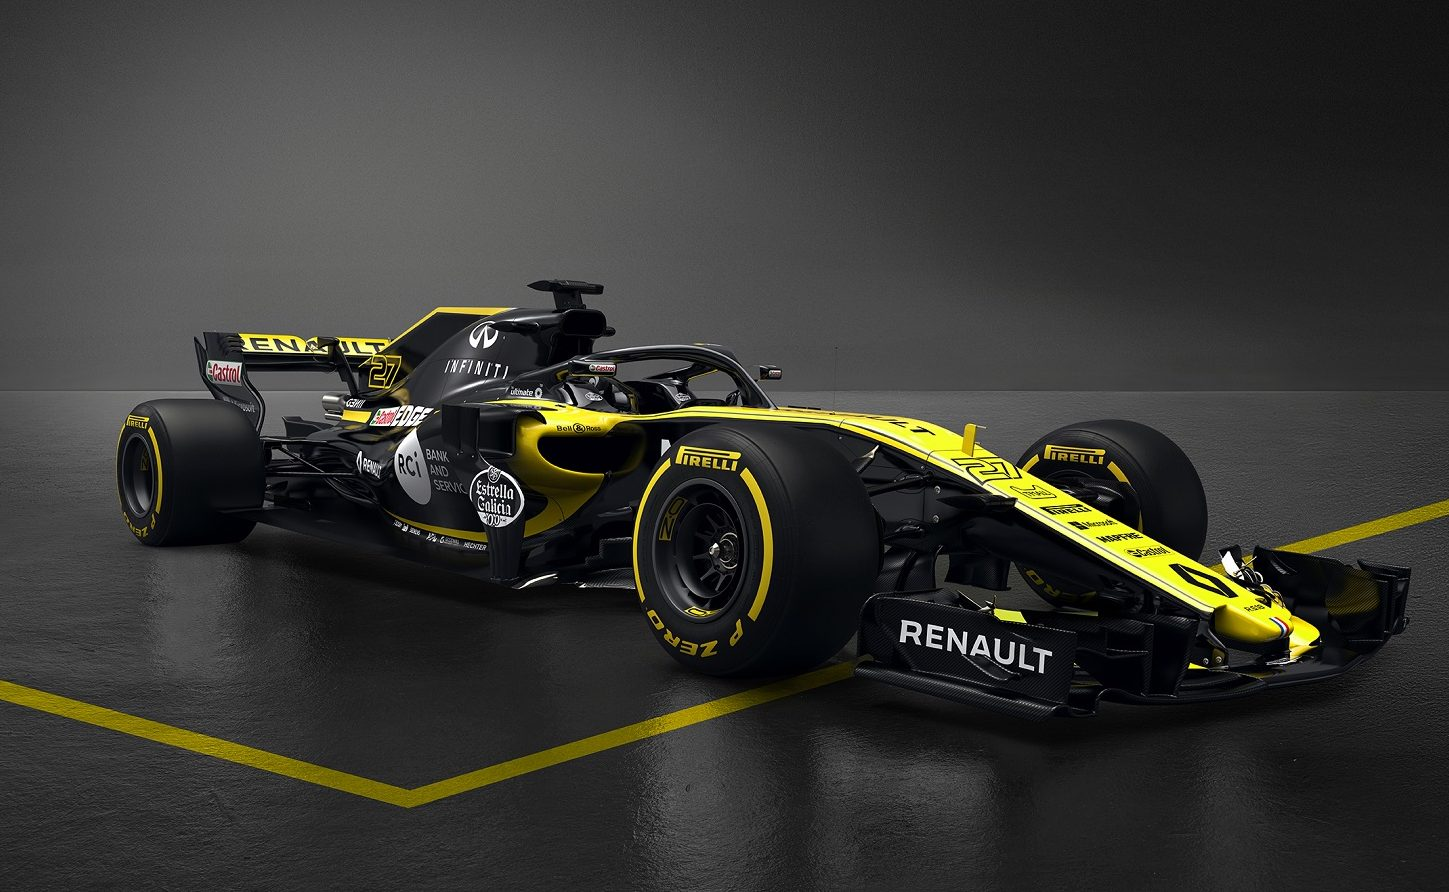 Motor Racing - Formula One Launch - Renault Sport Formula One Team R.S.18 Launch - London, England